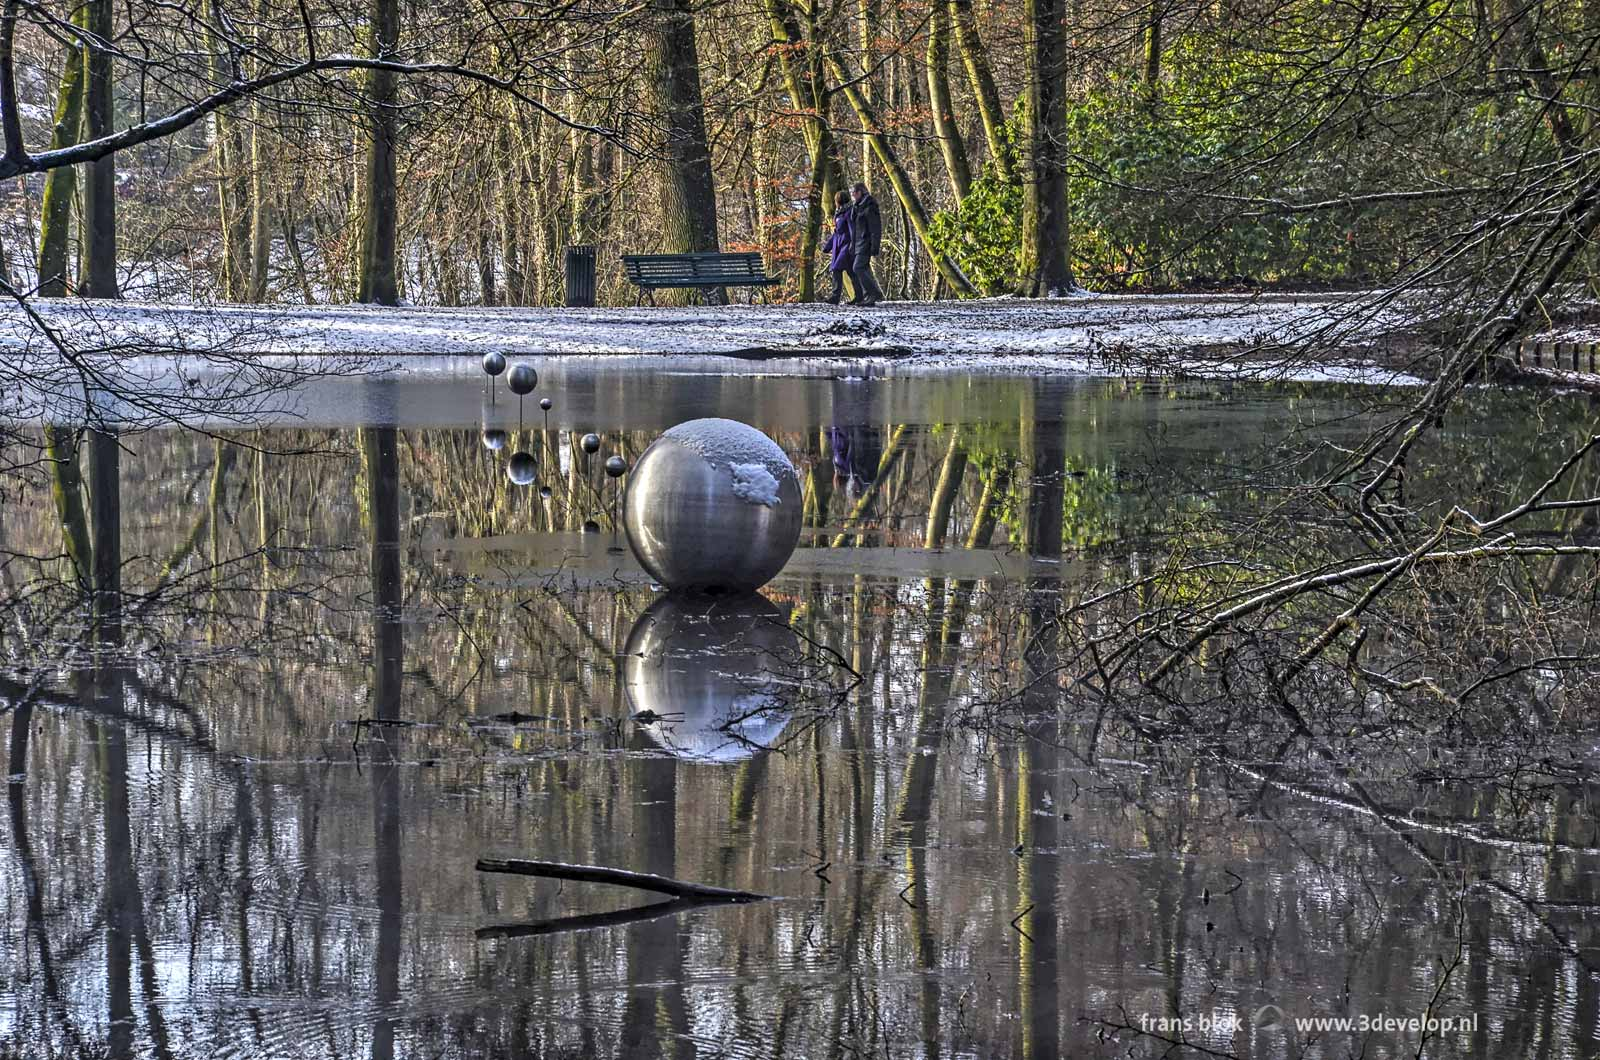 The Forest Planetarium of Arnhem: eight stainless steel spheres in the Cold Pond in Sonsbeek Park